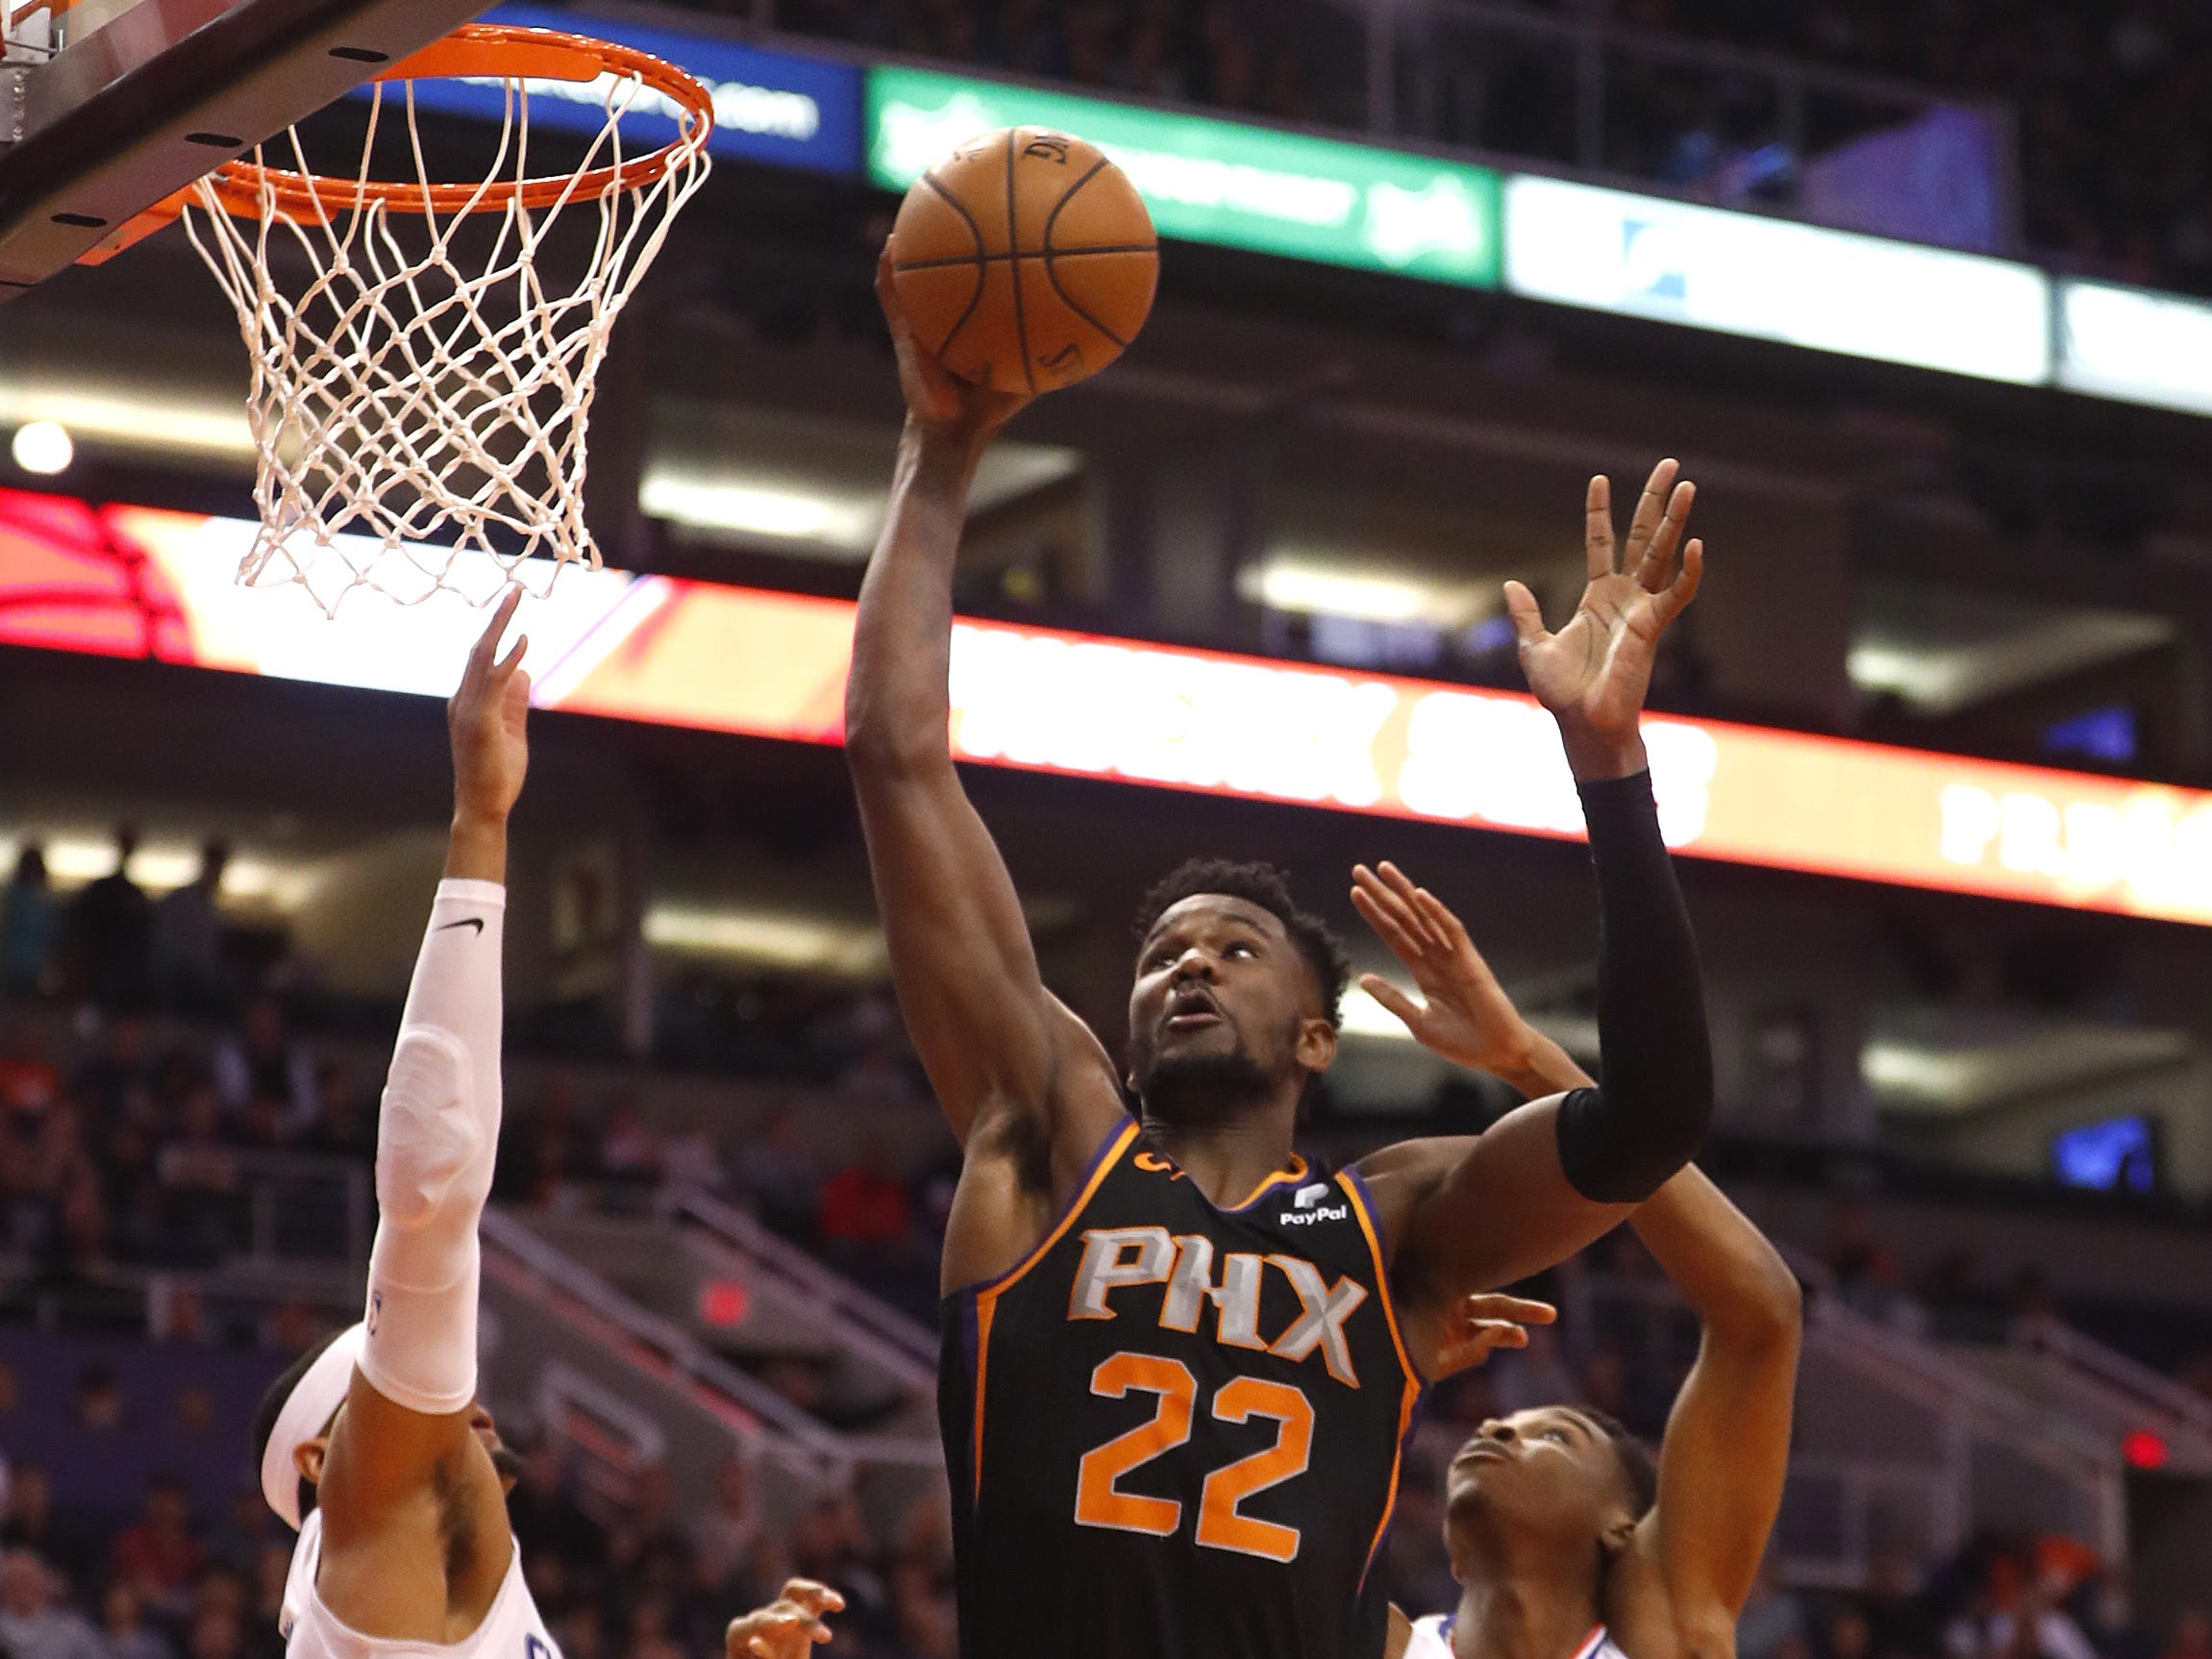 Suns' Deandre Ayton (22) grabs a pass against Clippers' Tobias Harris (34) and Shai Gilgeous-Alexander (2) during the first half at Talking Stick Resort Arena in Phoenix, Ariz. on January 4, 2019.